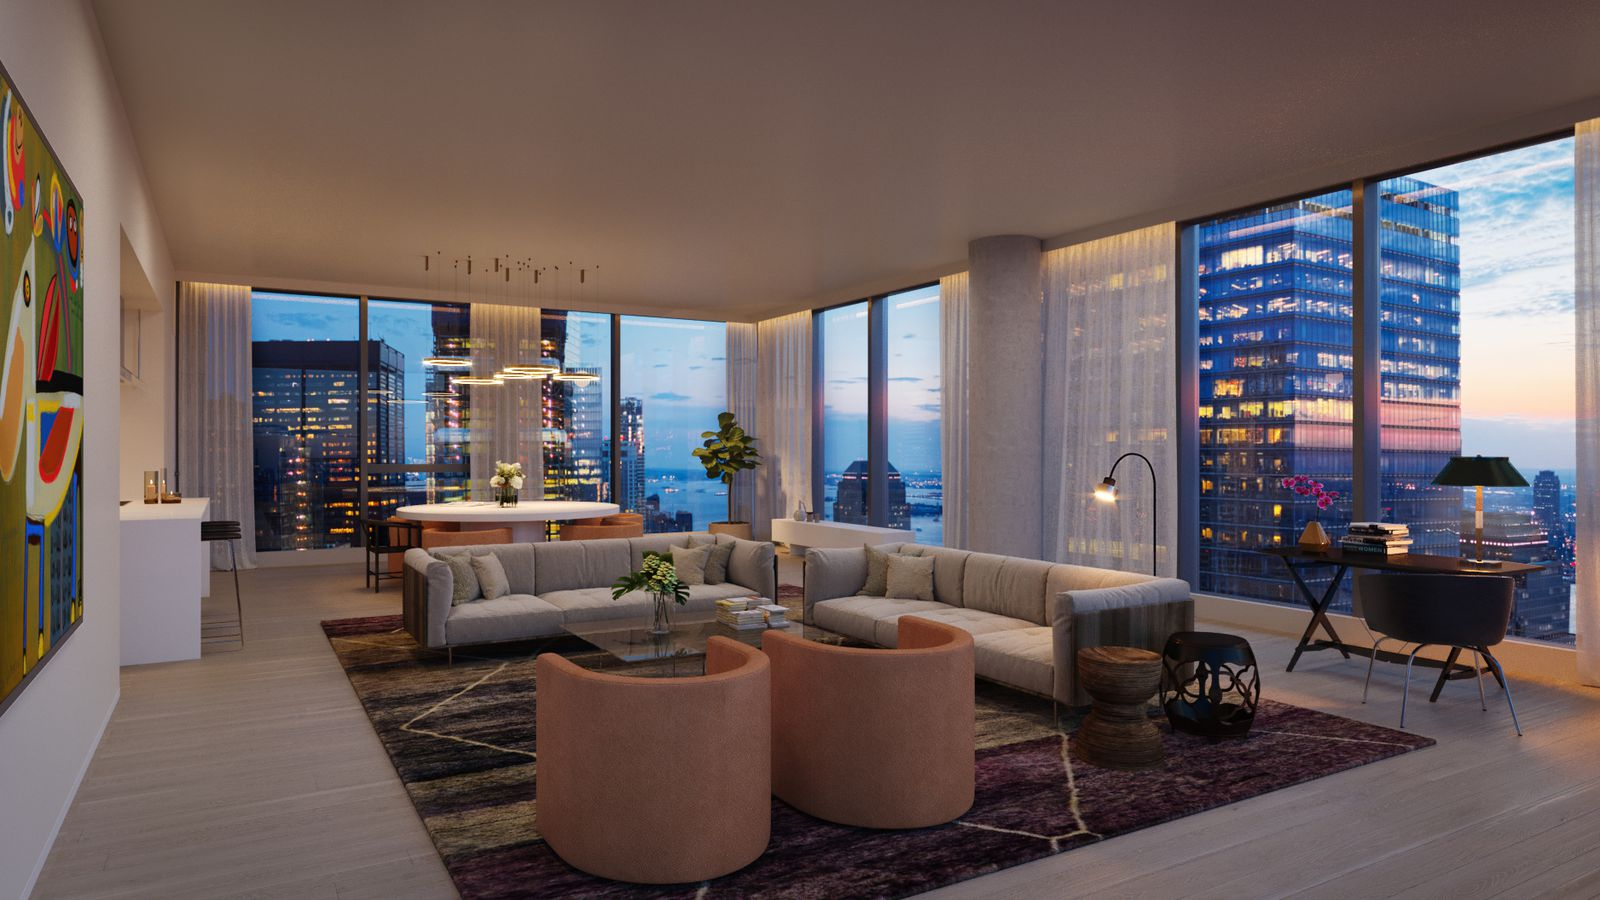 New looks at 45 park place sharif el gamal s fidi condo - 3 bedroom apartments for sale nyc ...